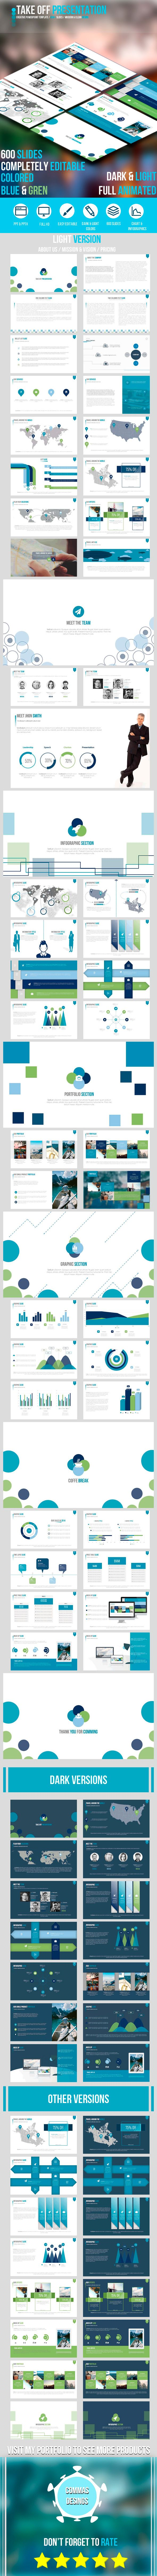 Take Off Presentation (Powerpoint Templates)